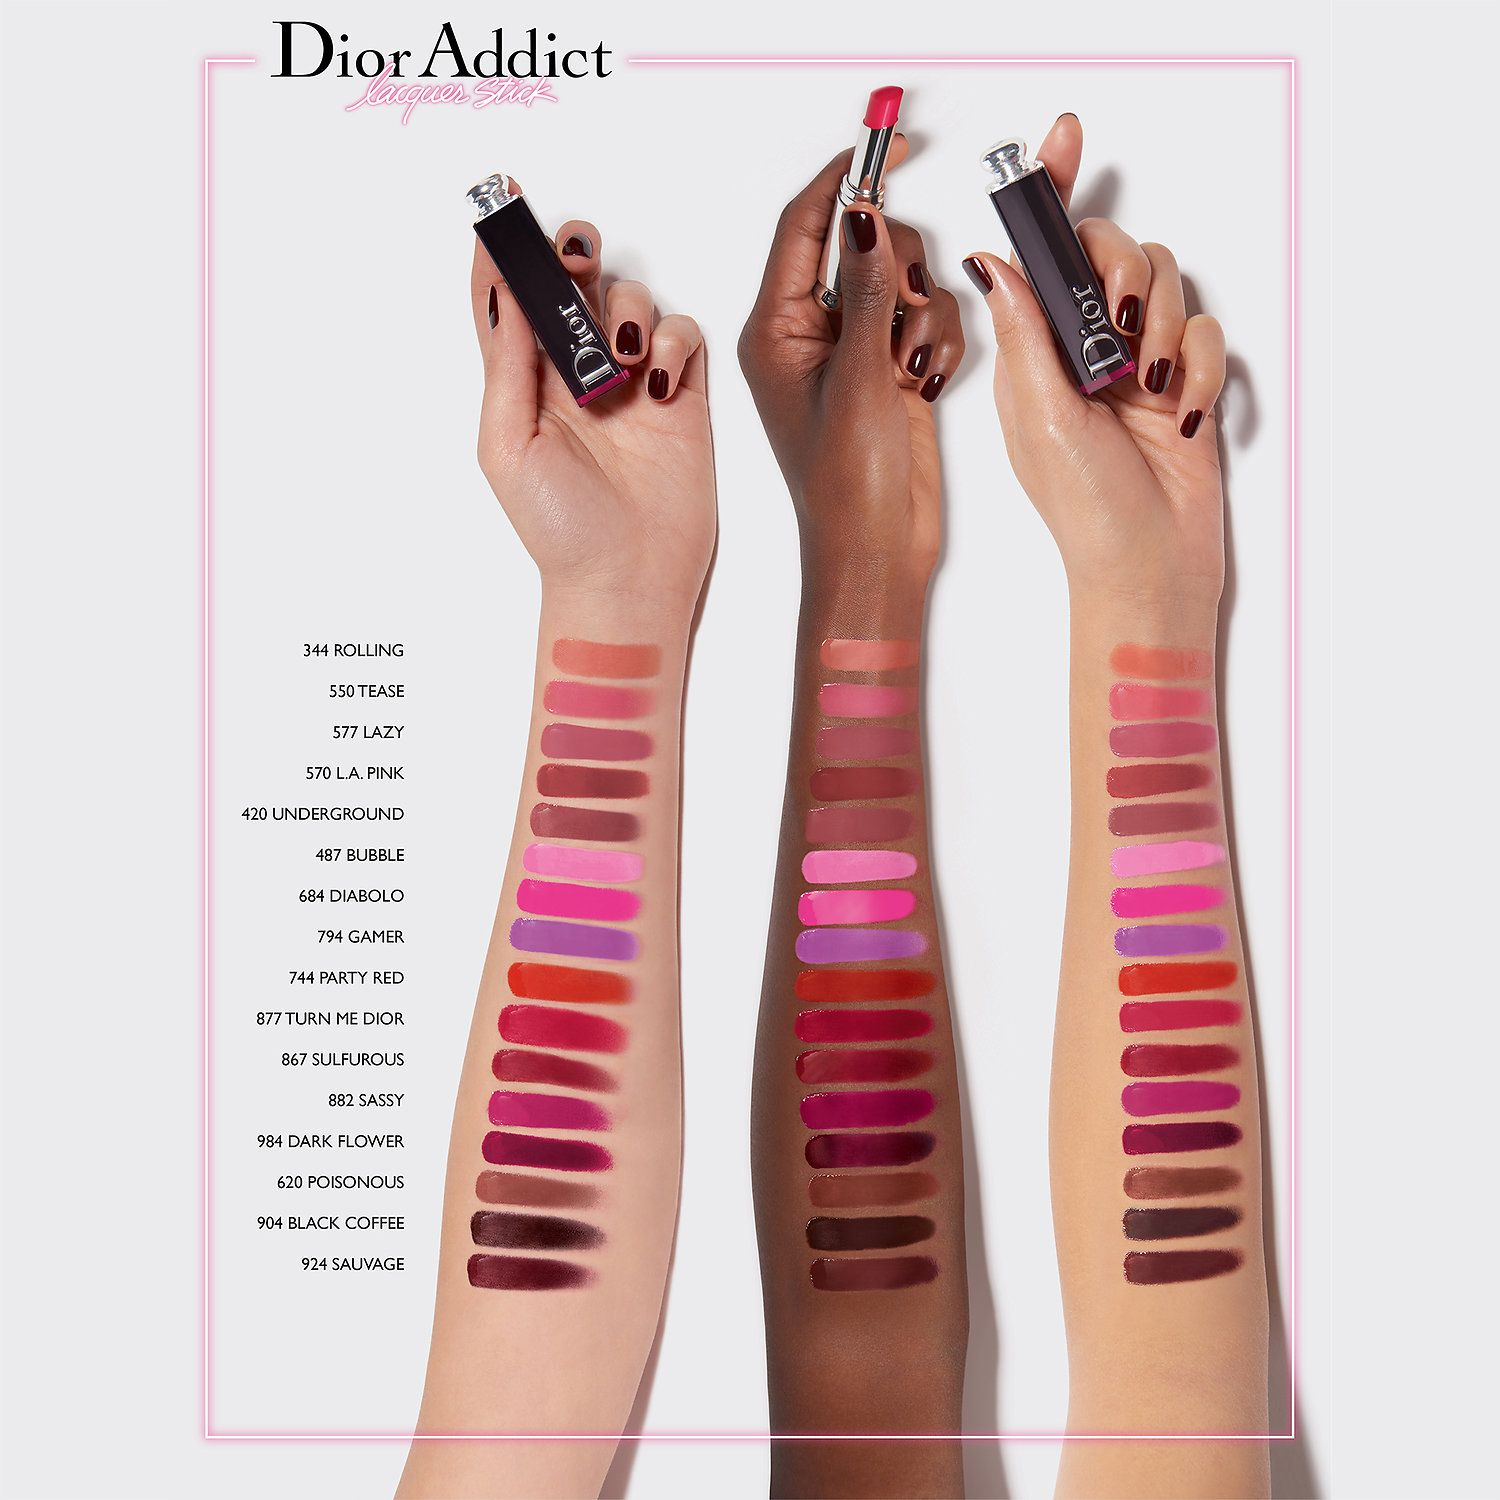 Dior Addict Lacquer Stick Swatches  cfaf0a7e853